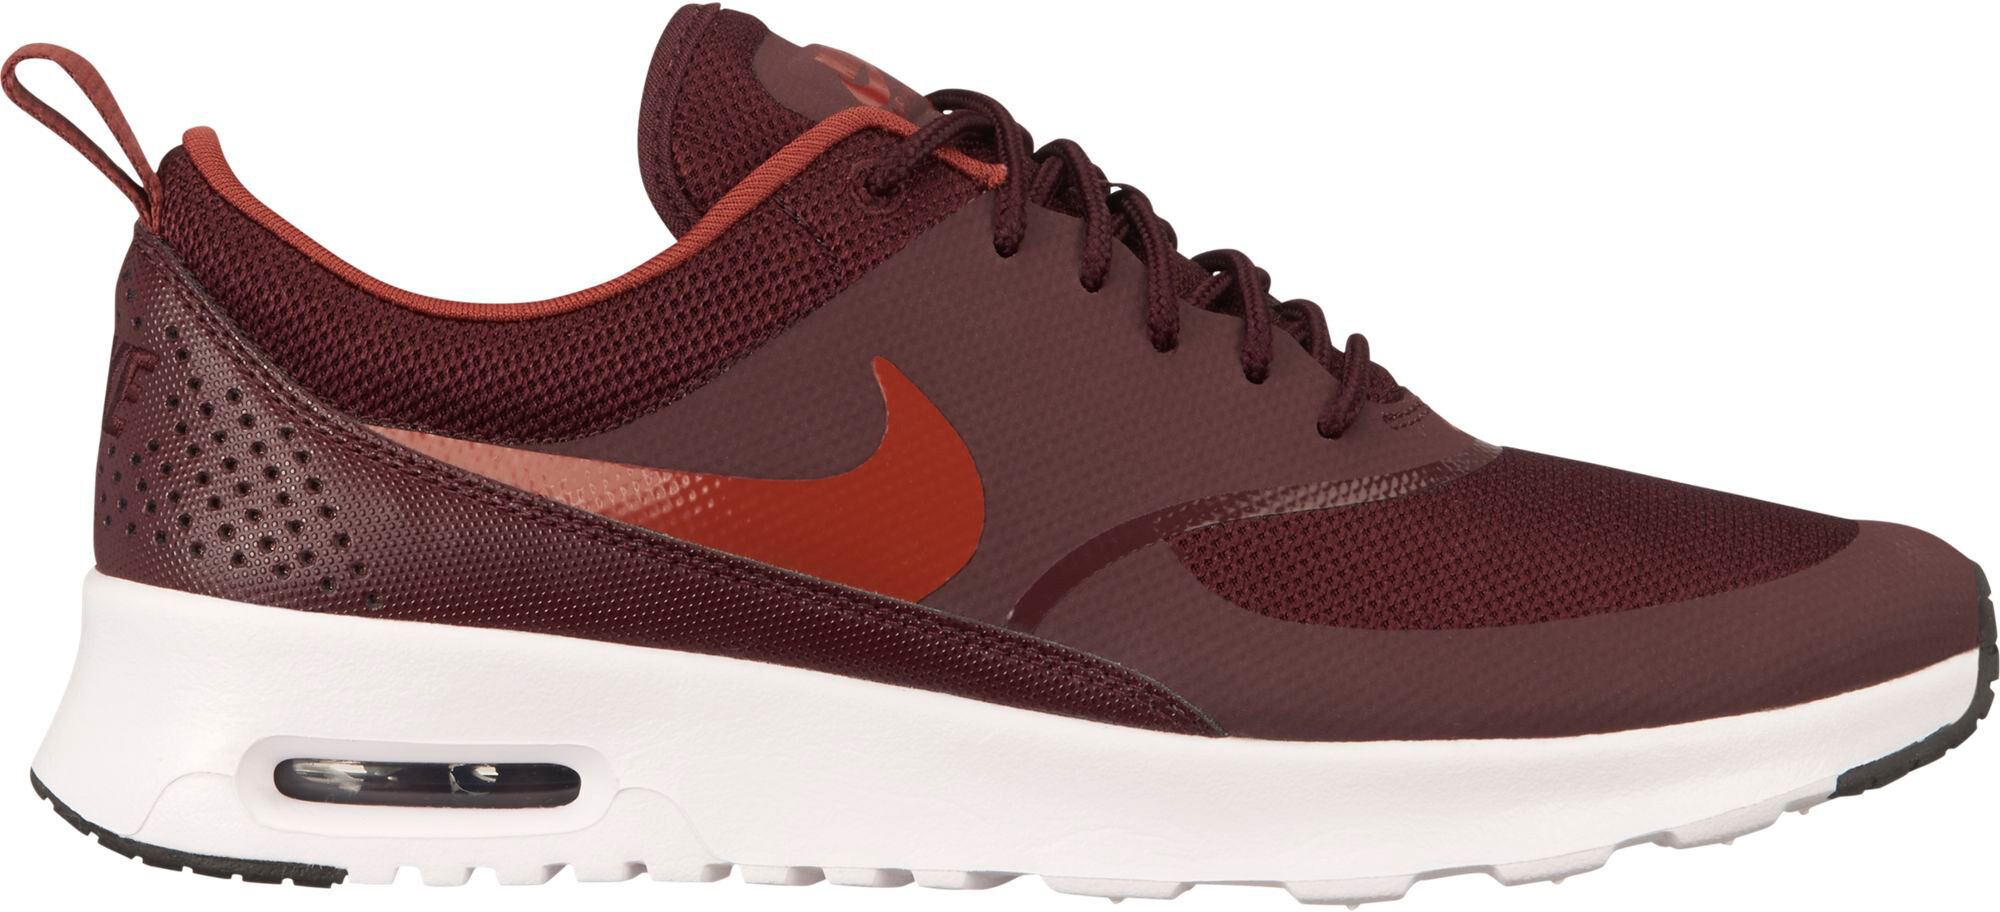 separation shoes 7a8bd 7d300 ... italy nike wmns air max thea damer 87c98 3ed55